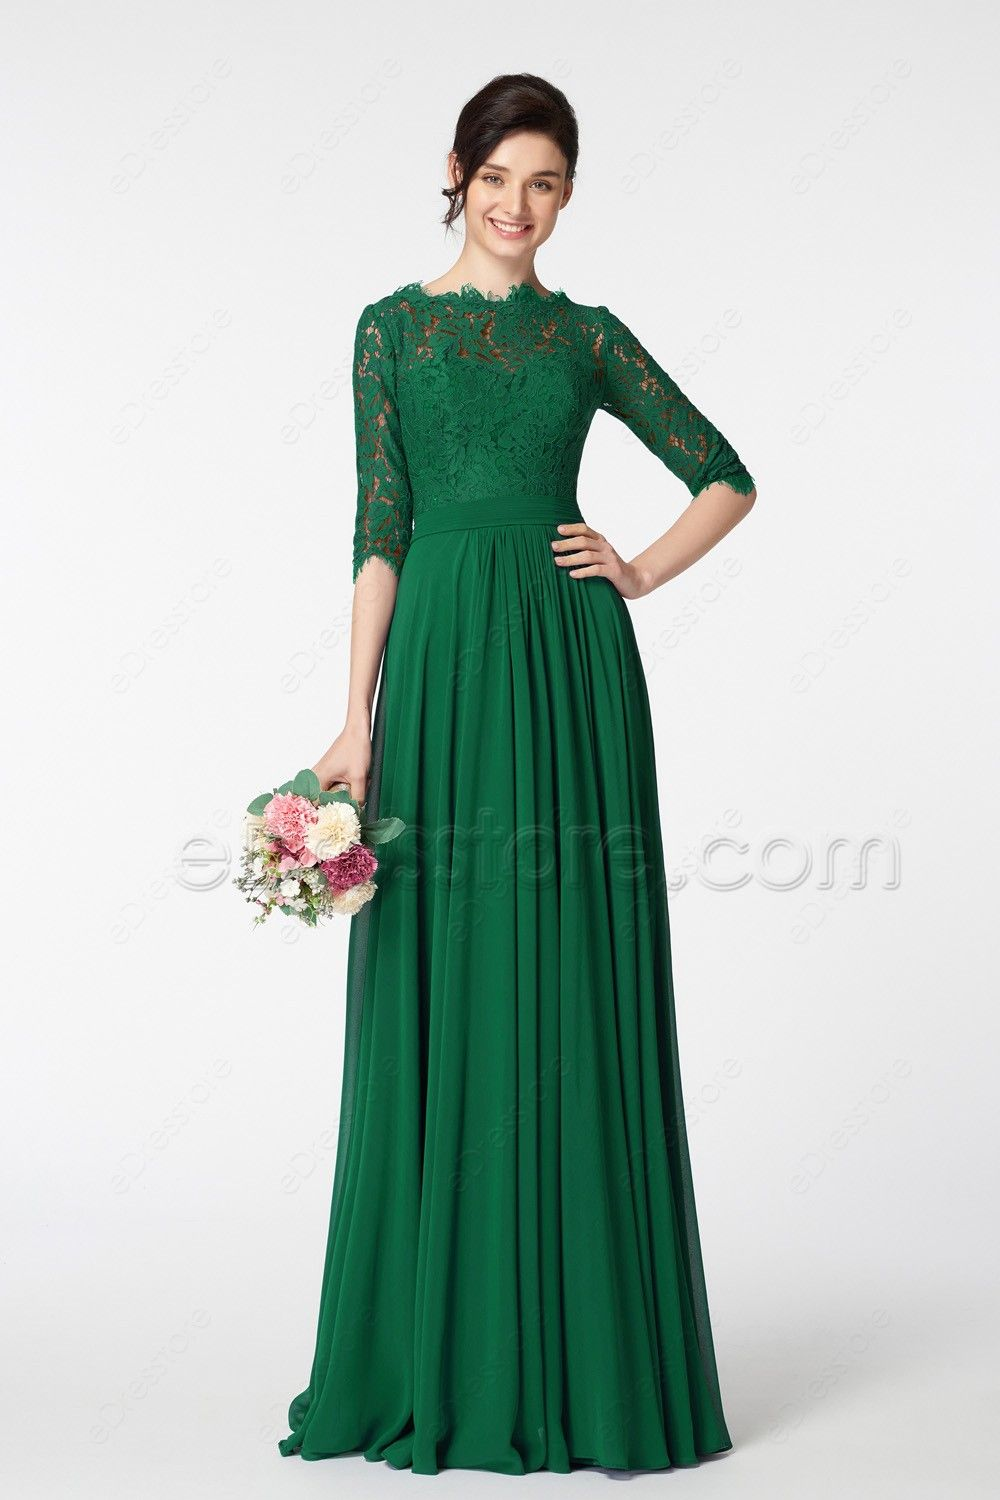 Emerald green modest mother of the bride dress with